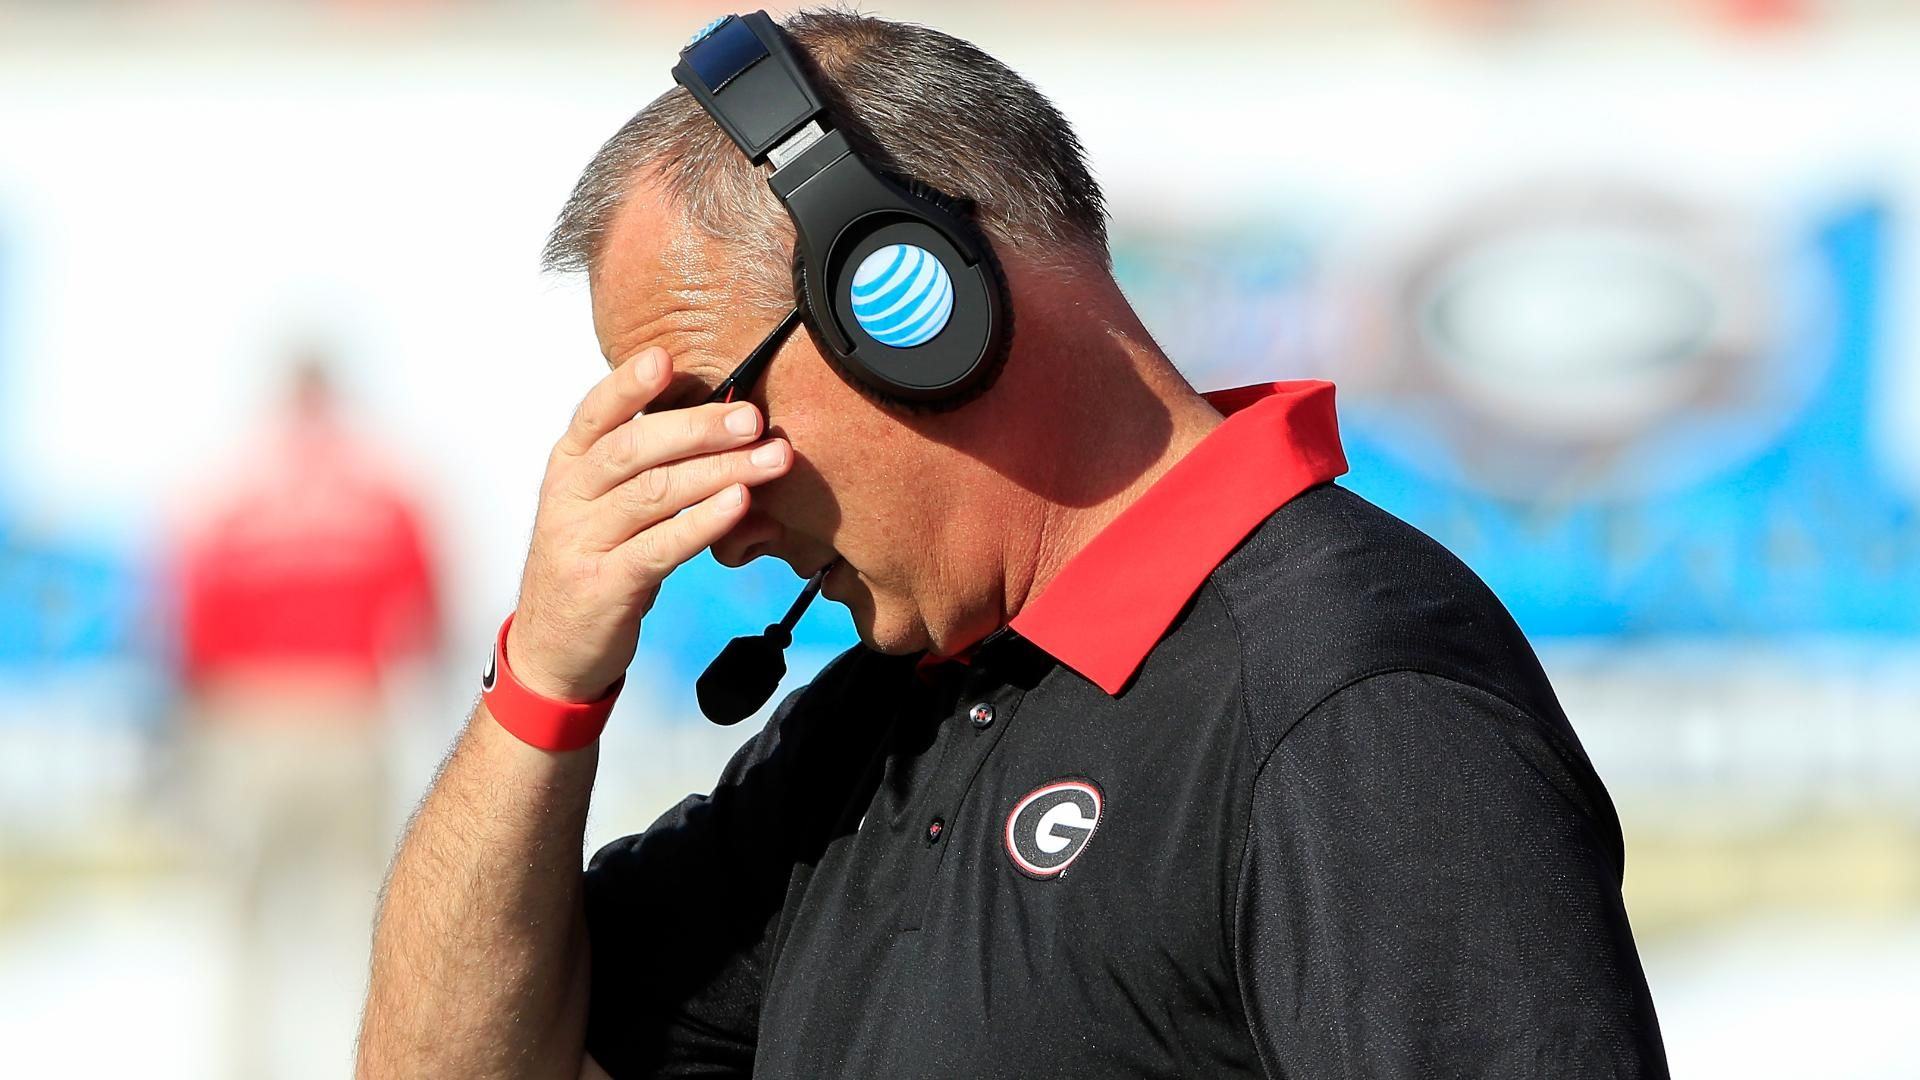 https://secure.espncdn.com/combiner/i?img=/media/motion/2015/1101/dm_151101_CFB_SUNDAY_MARK_RICHT_HOT_SEAT/dm_151101_CFB_SUNDAY_MARK_RICHT_HOT_SEAT.jpg